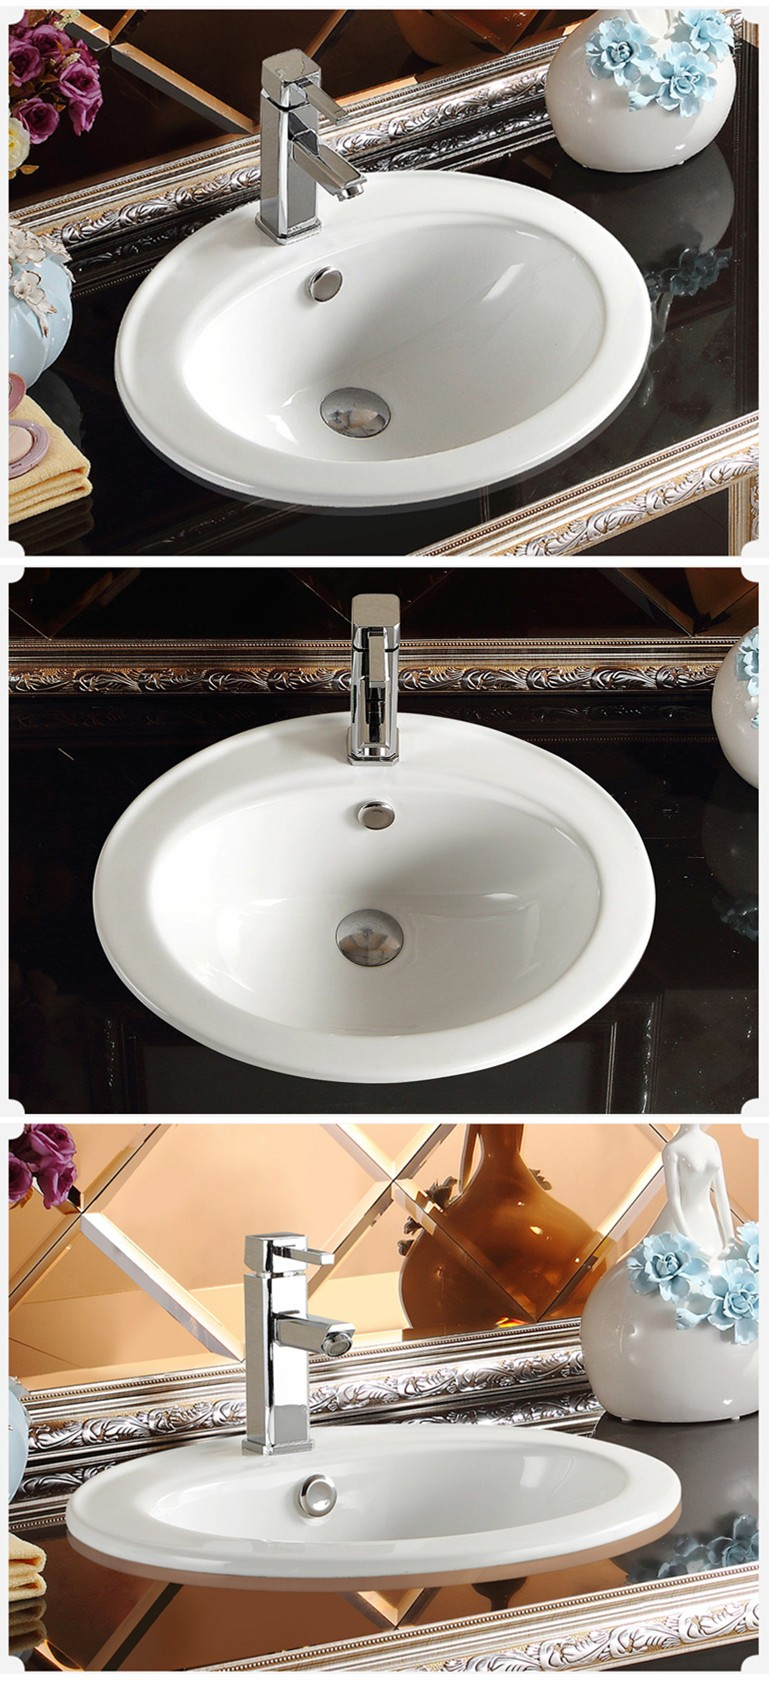 Decorated Countertop Ceramic Hand Painted Porcelain Sink